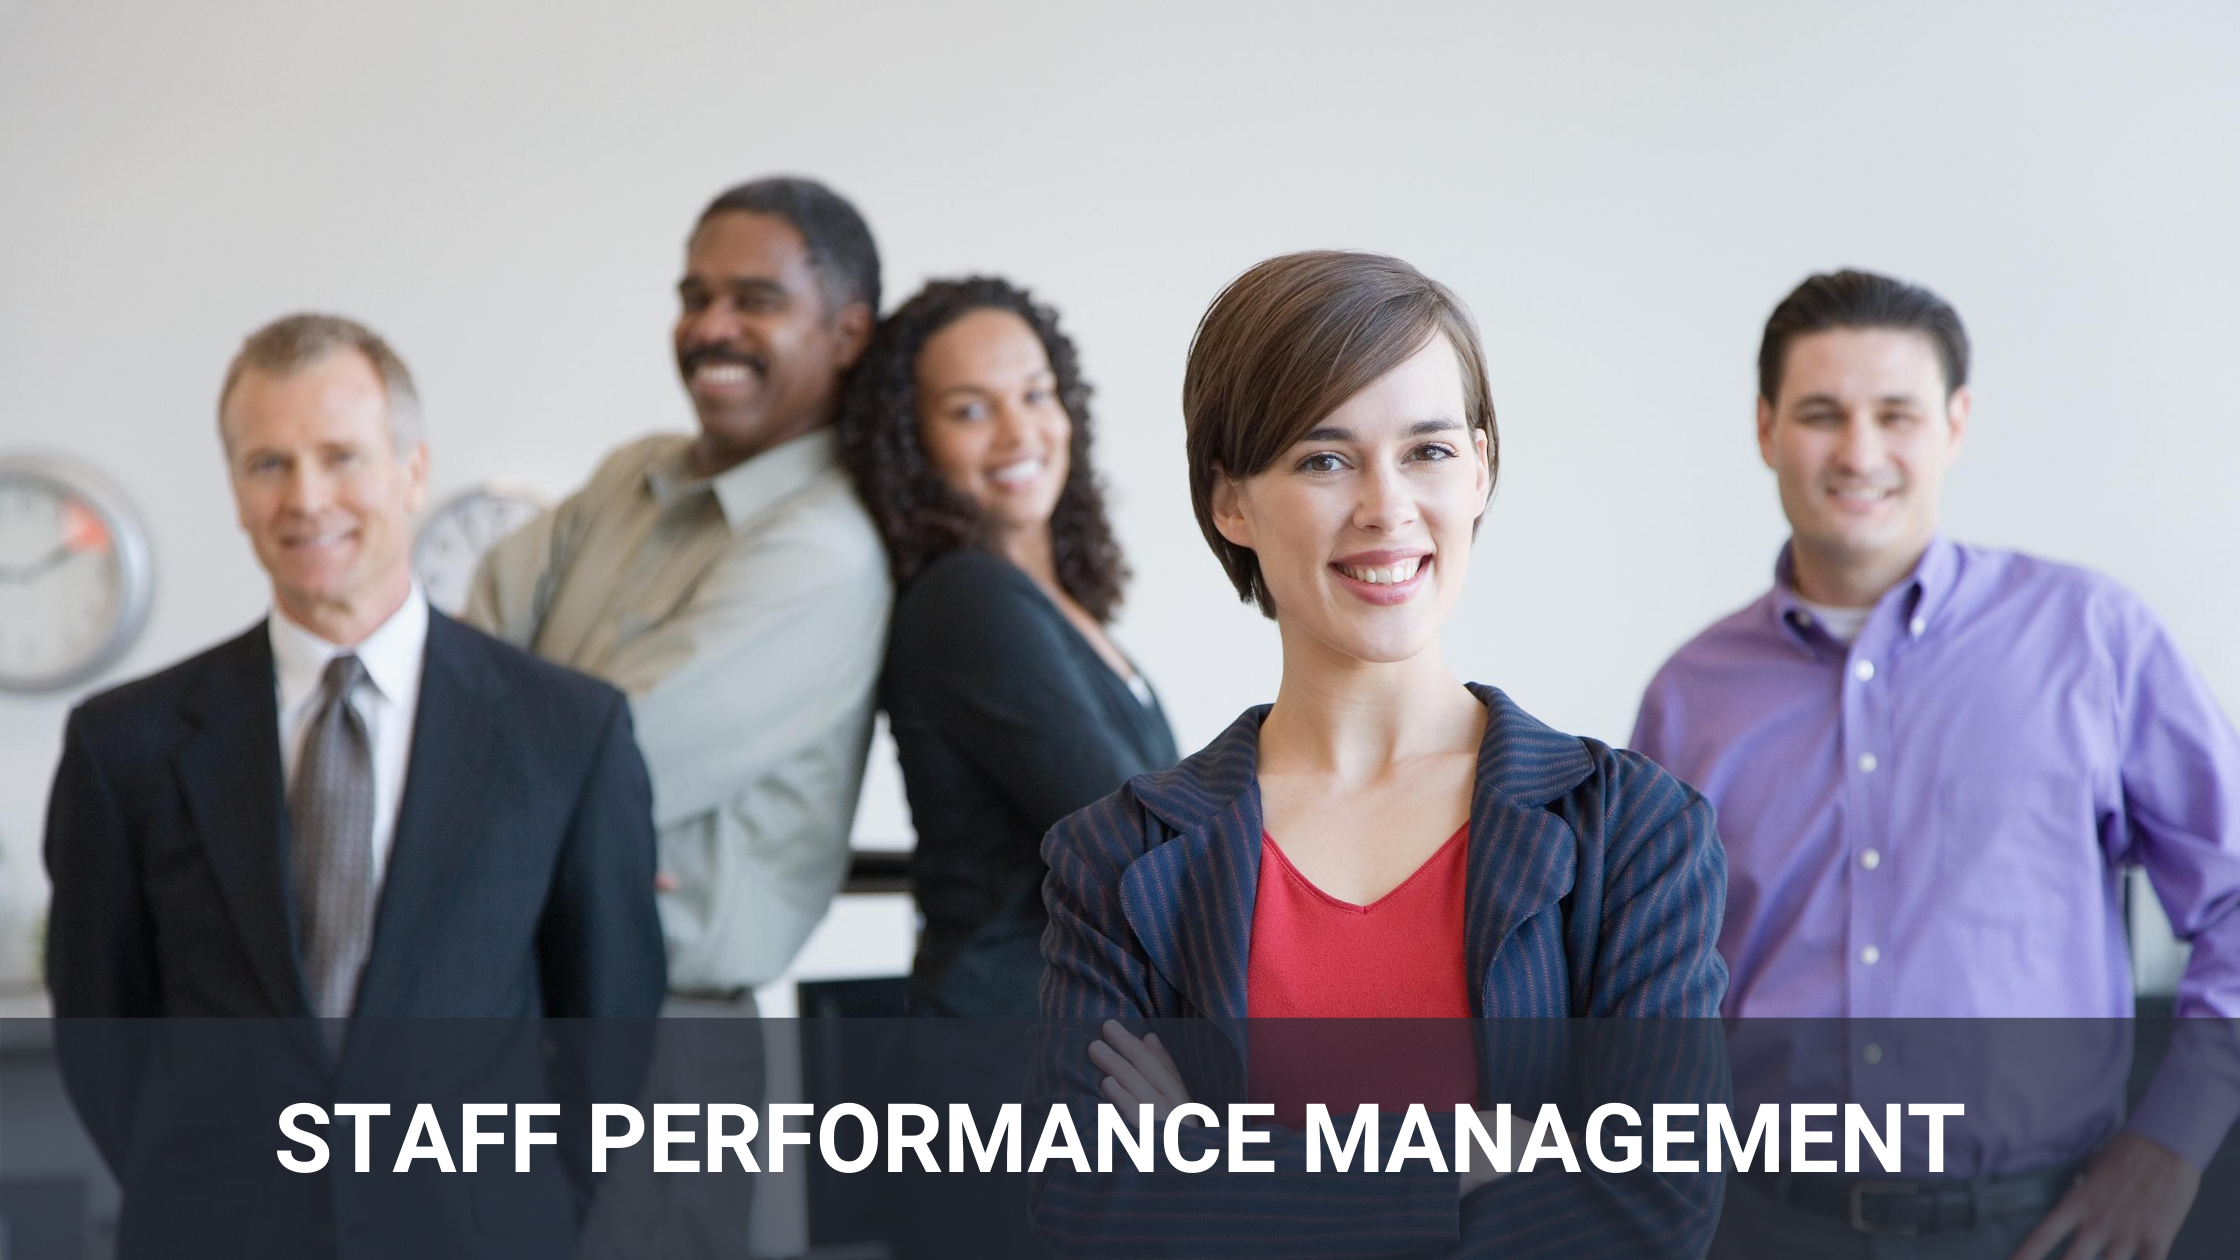 STAFF PERFORMANCE MANAGEMENT